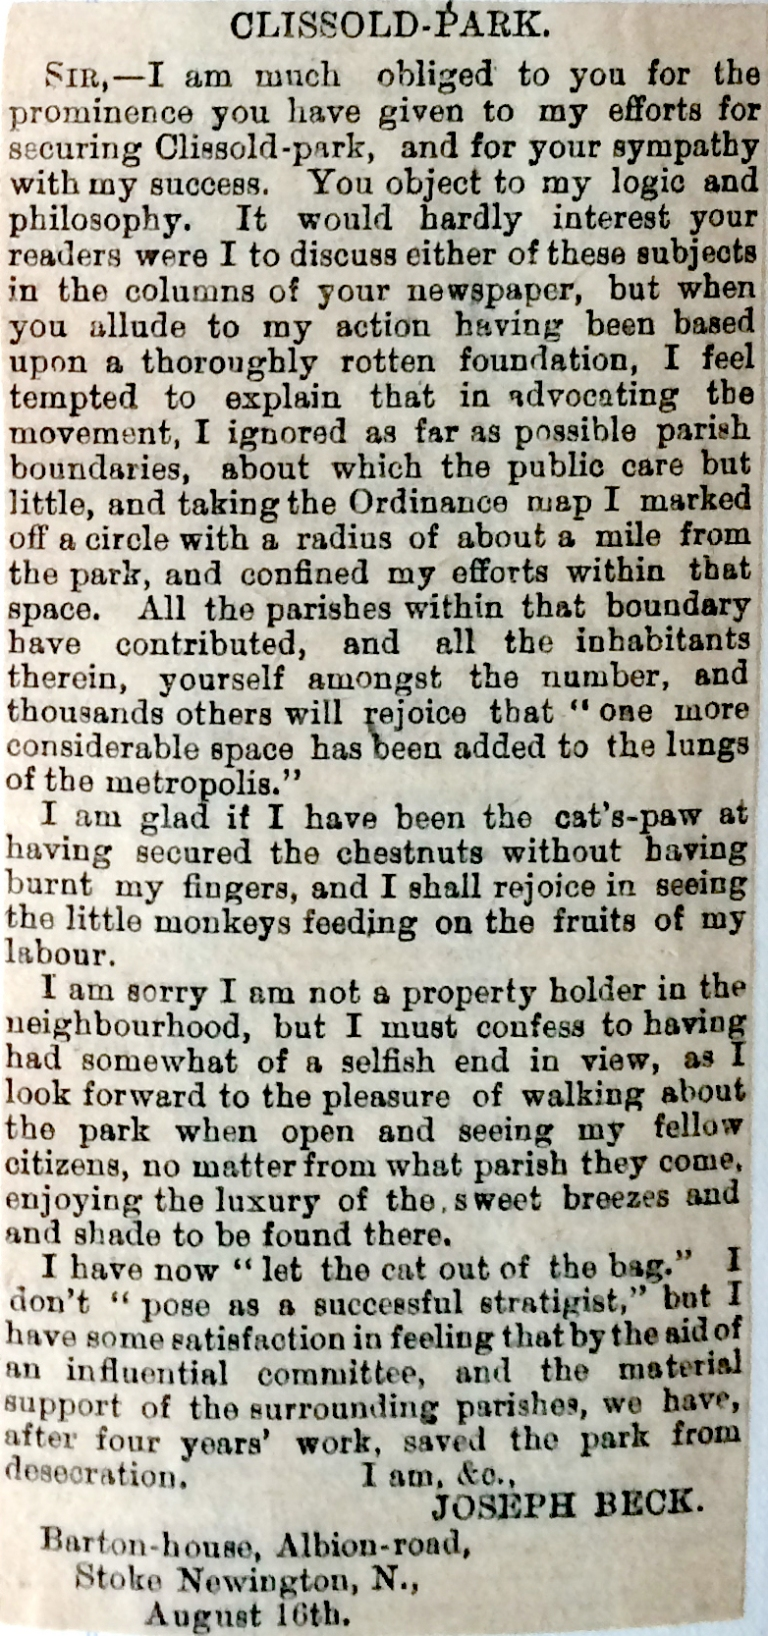 16_08_1888 NEWS CLIPPING JB Letter to the editor (possibly Islington Gazette) [CHECKED].JPG